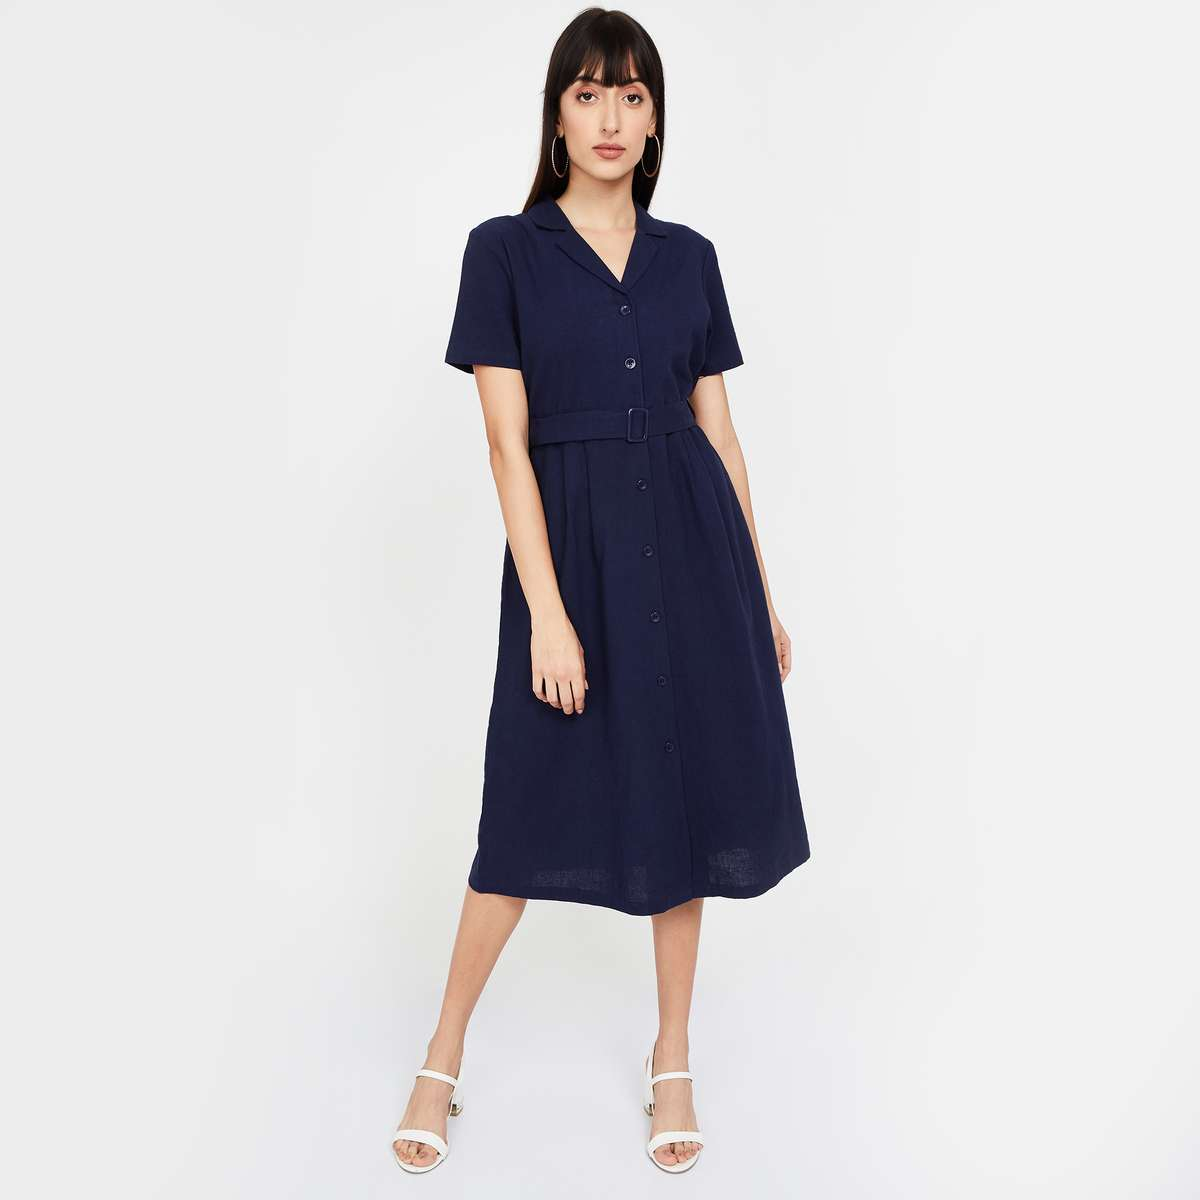 BOSSINI Solid Shirt Sleeves A-line Dress